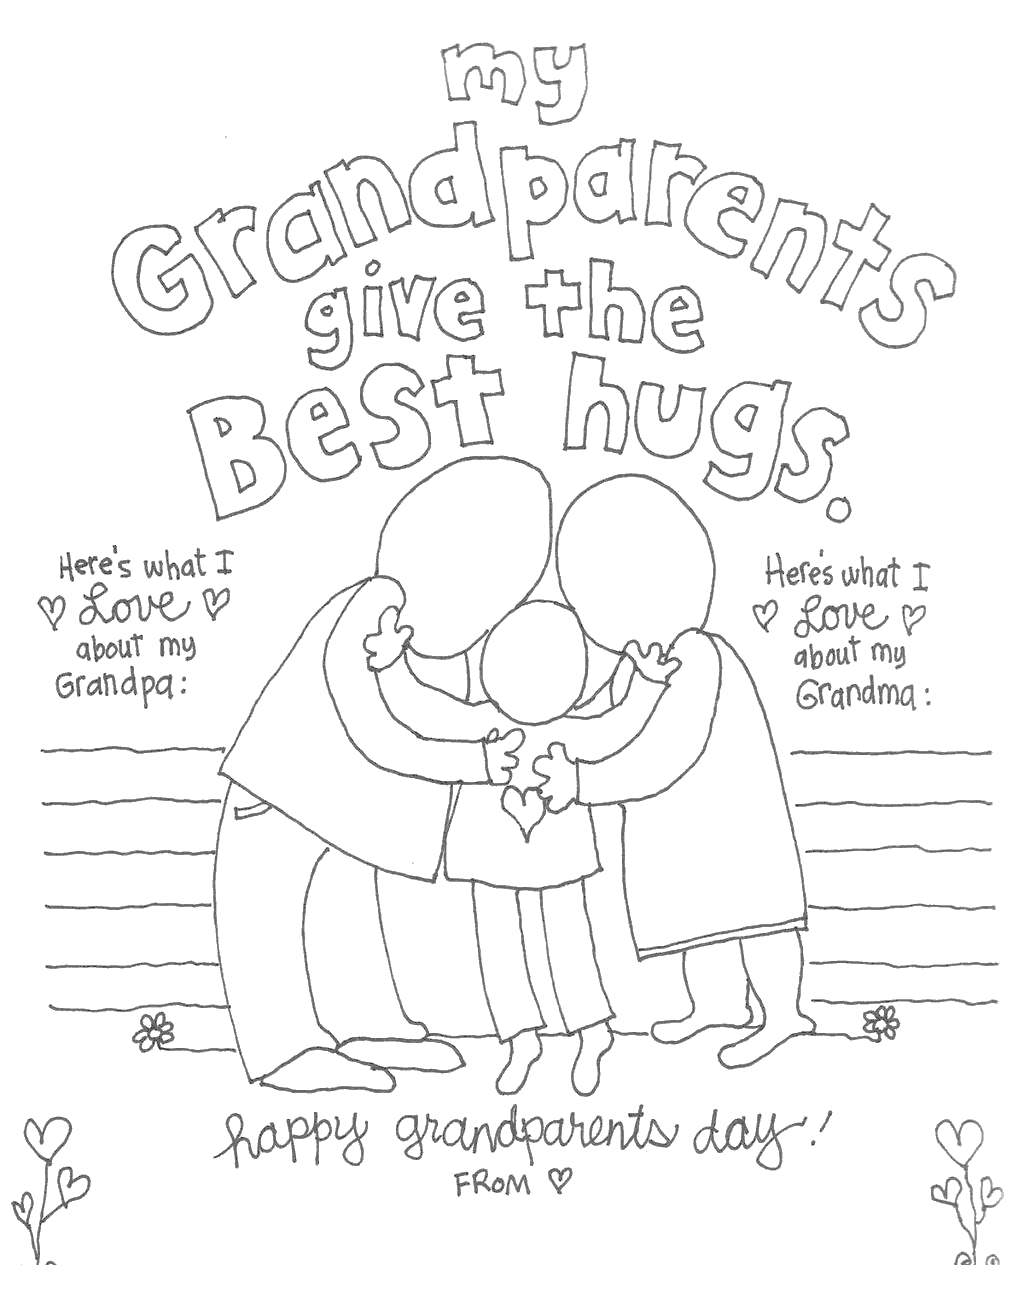 Free Grandparents Day Coloring Pages Give the Best Hugs printable